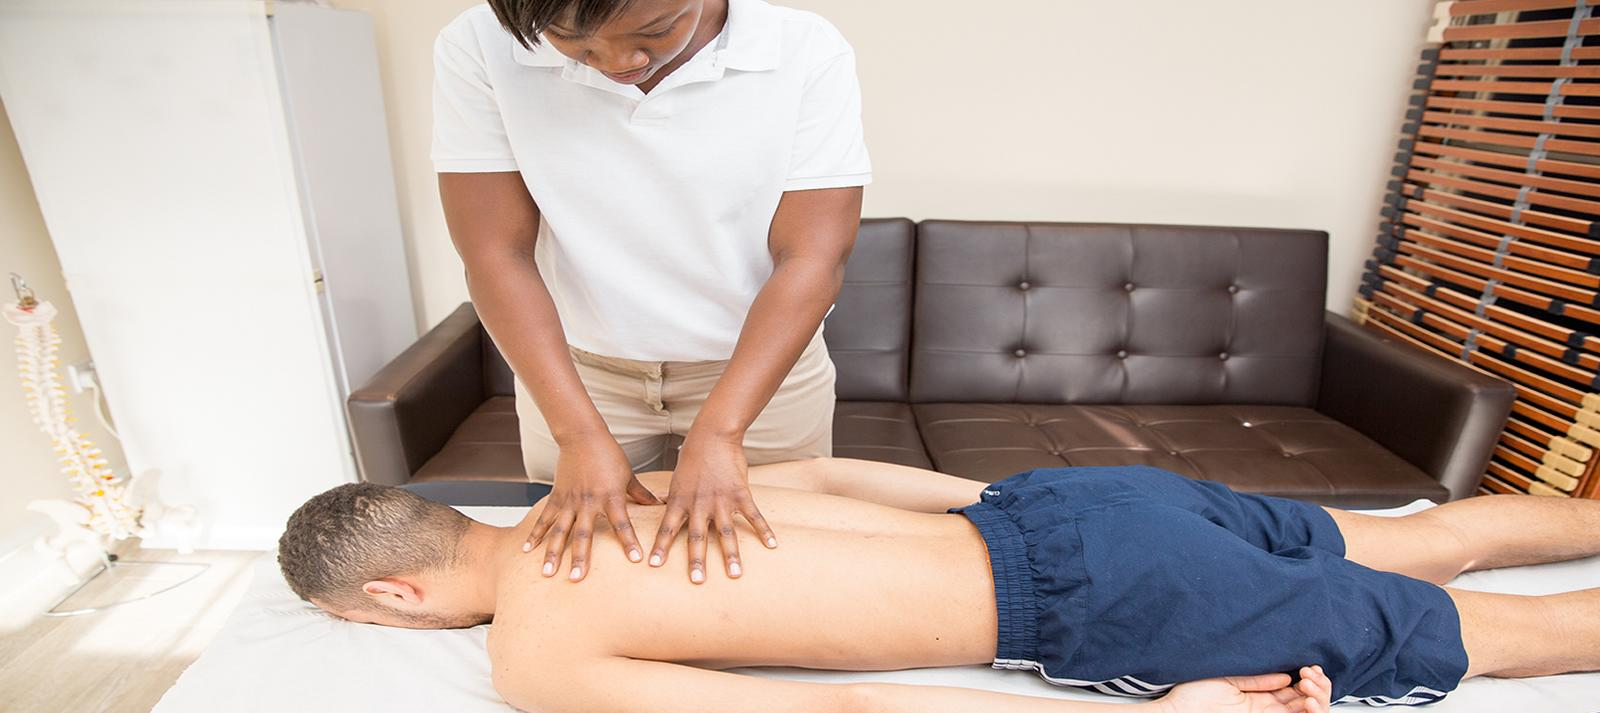 Distint Physiotherapy treatment